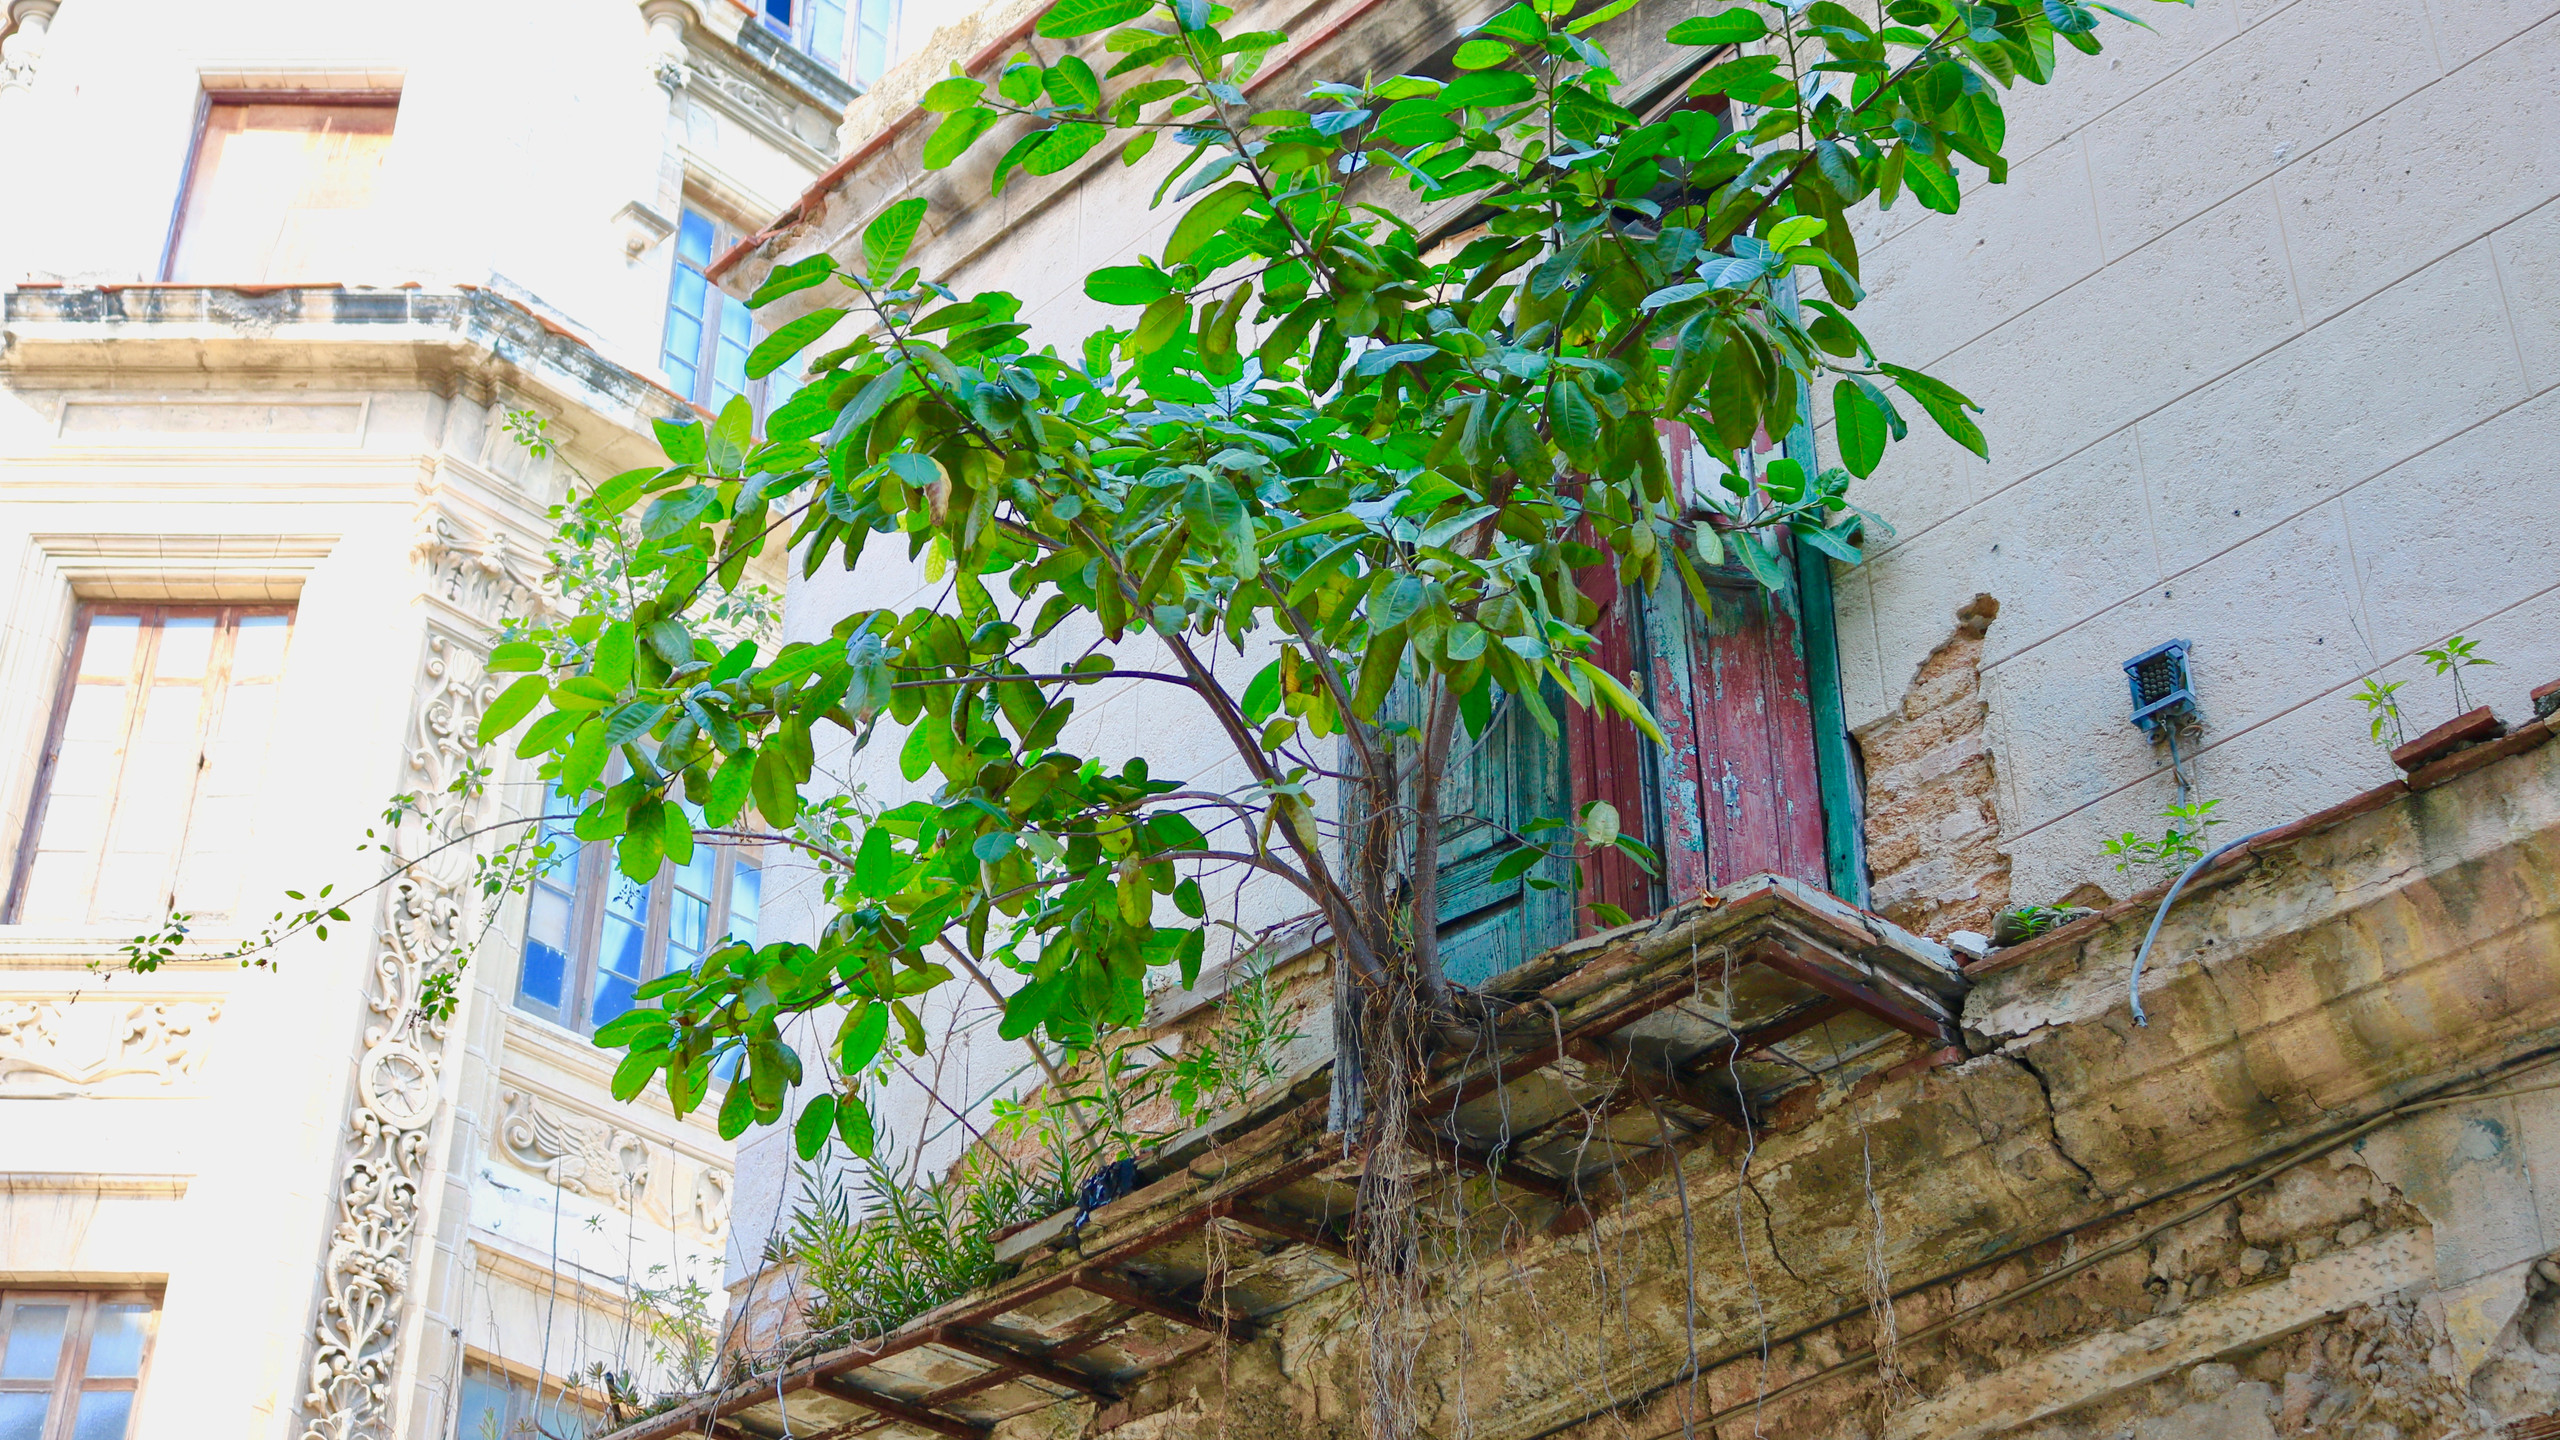 Crumbling balcony with a small tree growing on it in Old Havana.